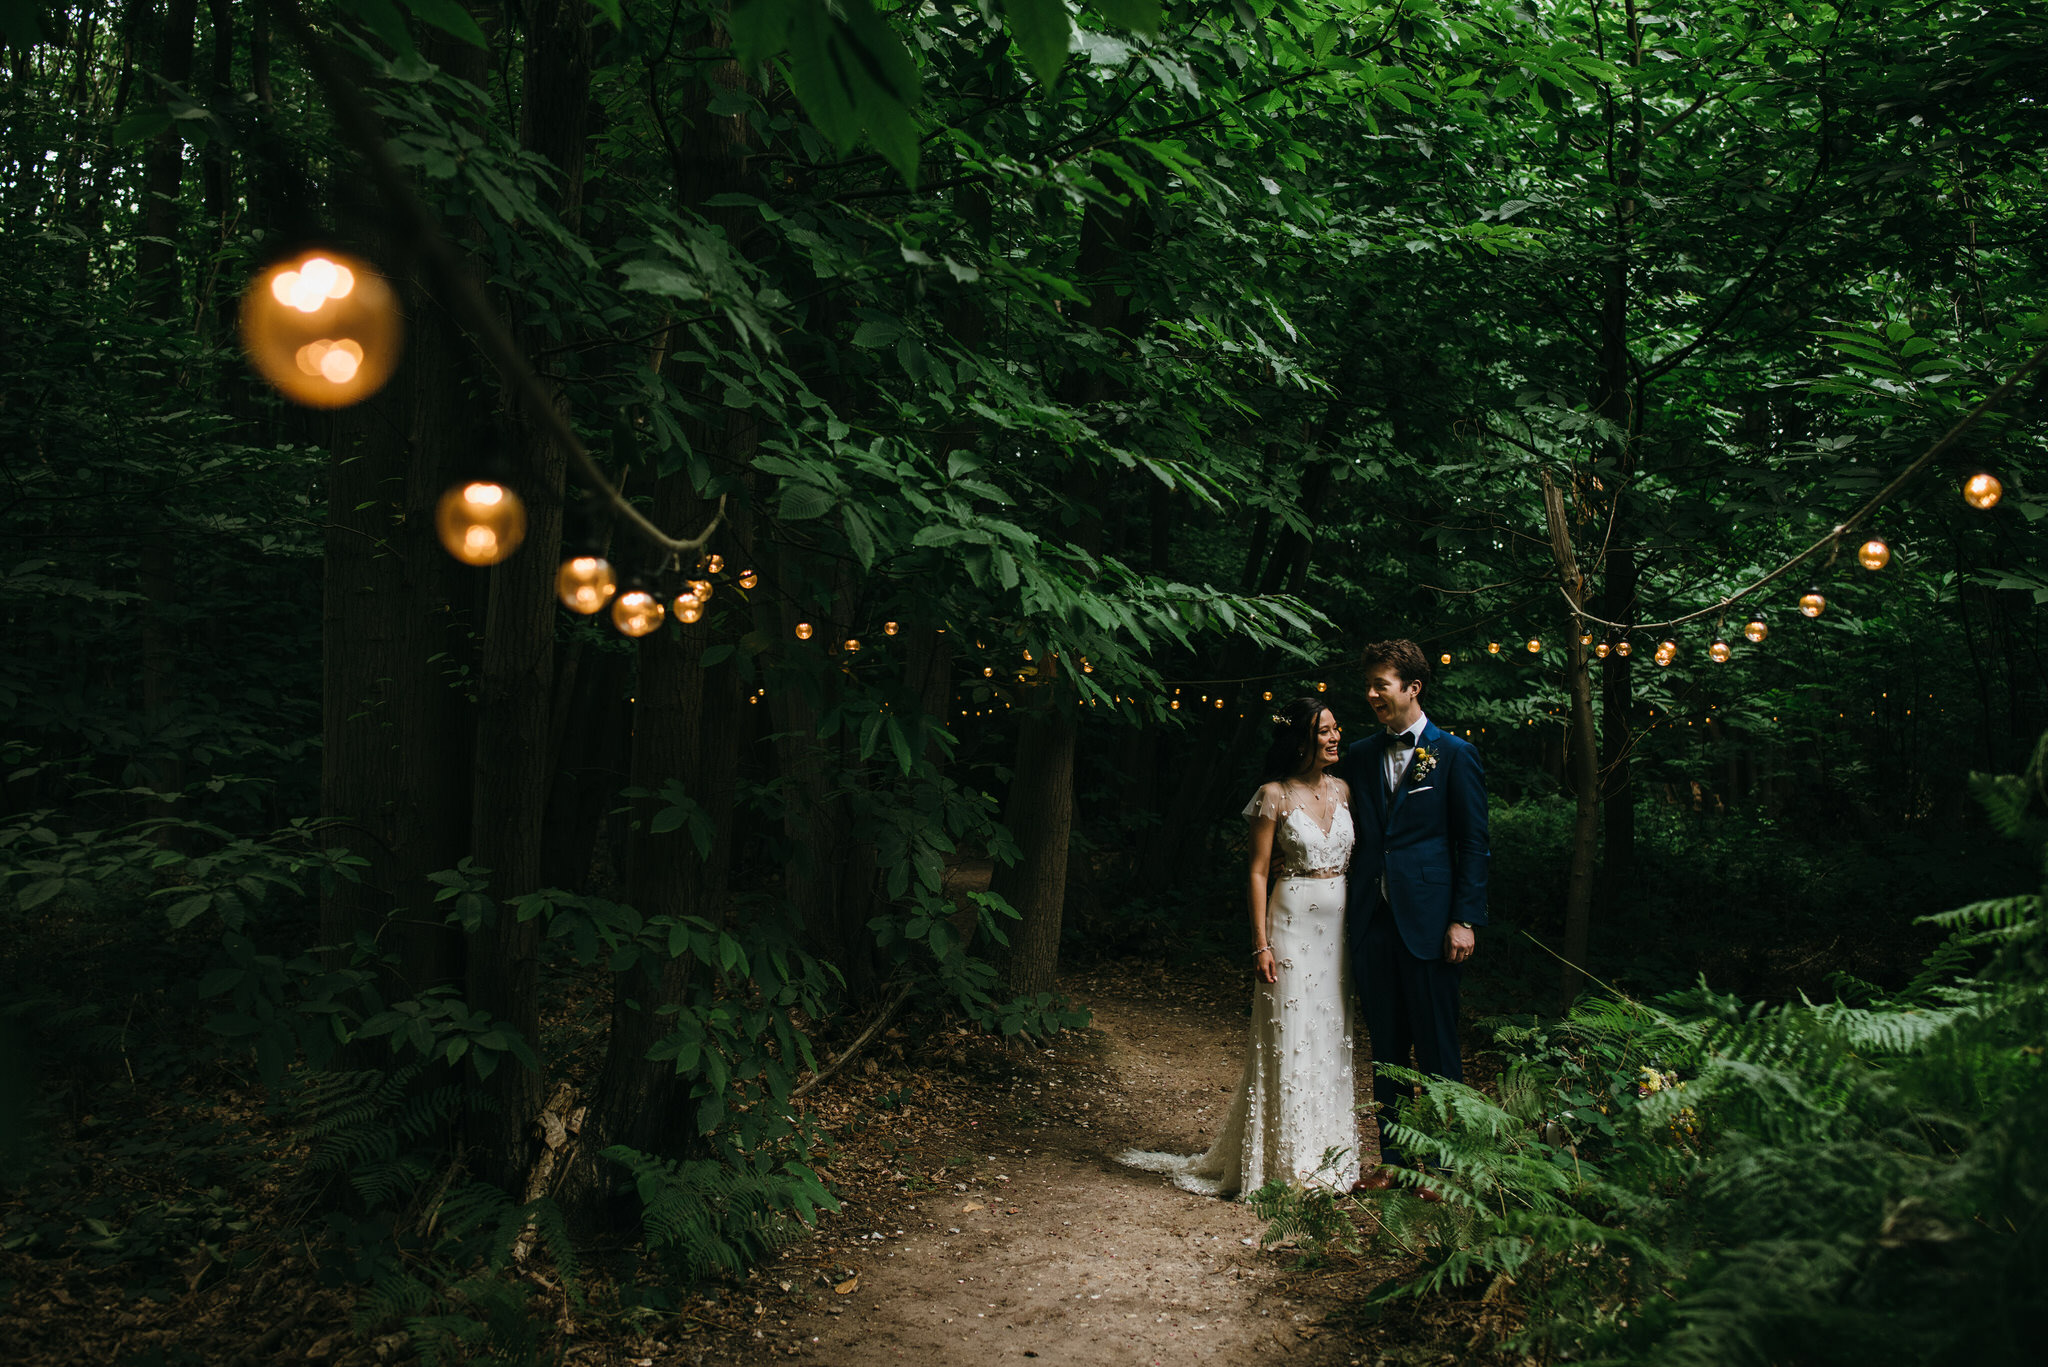 The dreys kent wedding photography - bride and groom in the woods